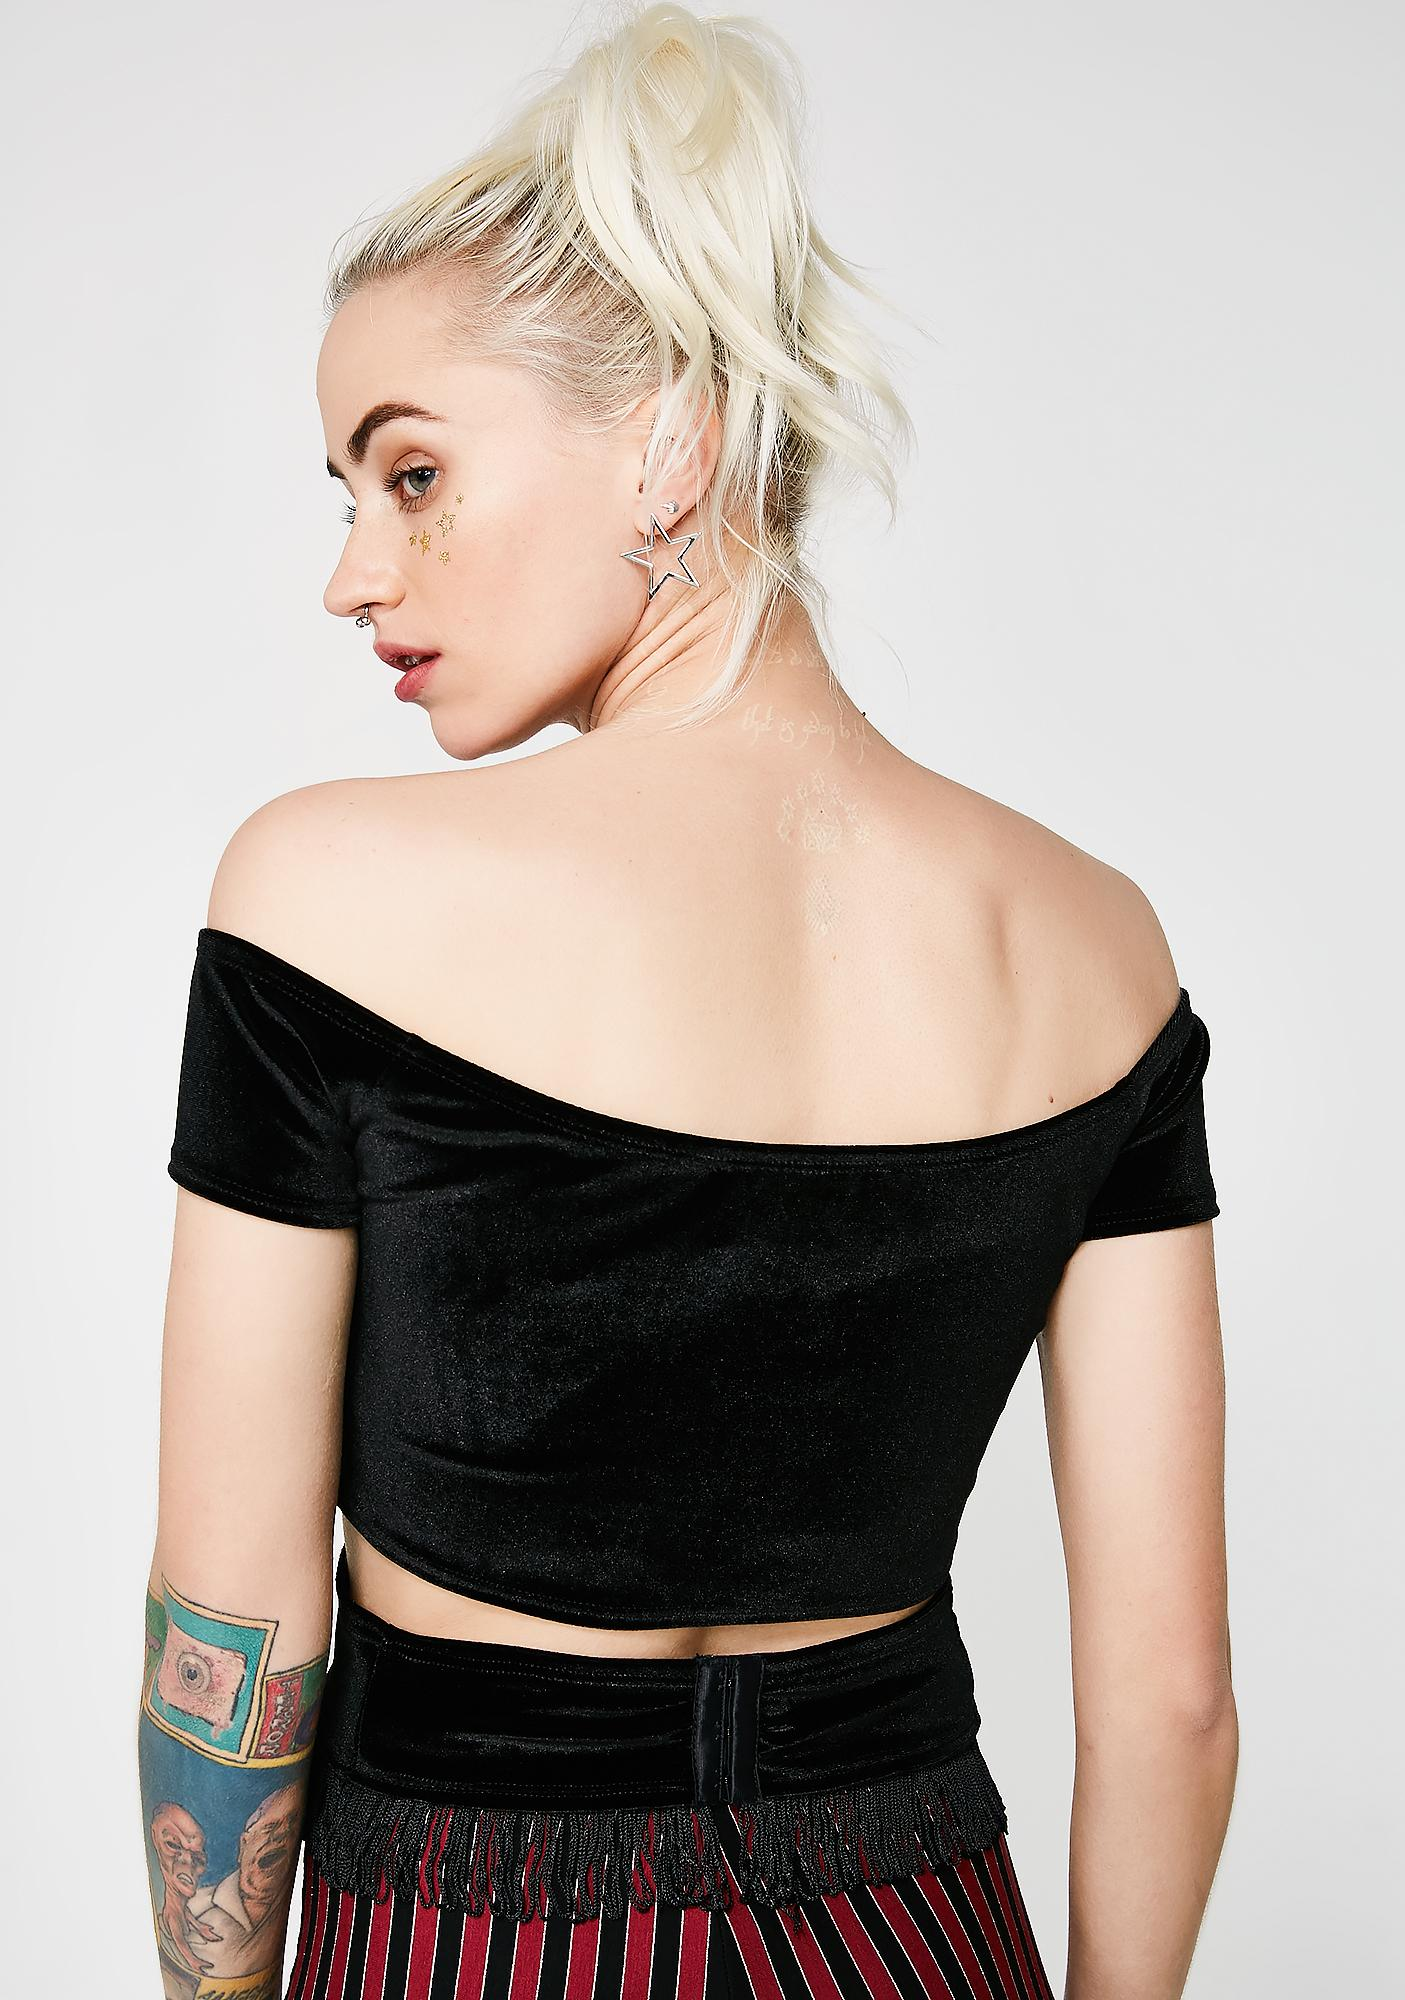 EastnWest Webster Crop Top